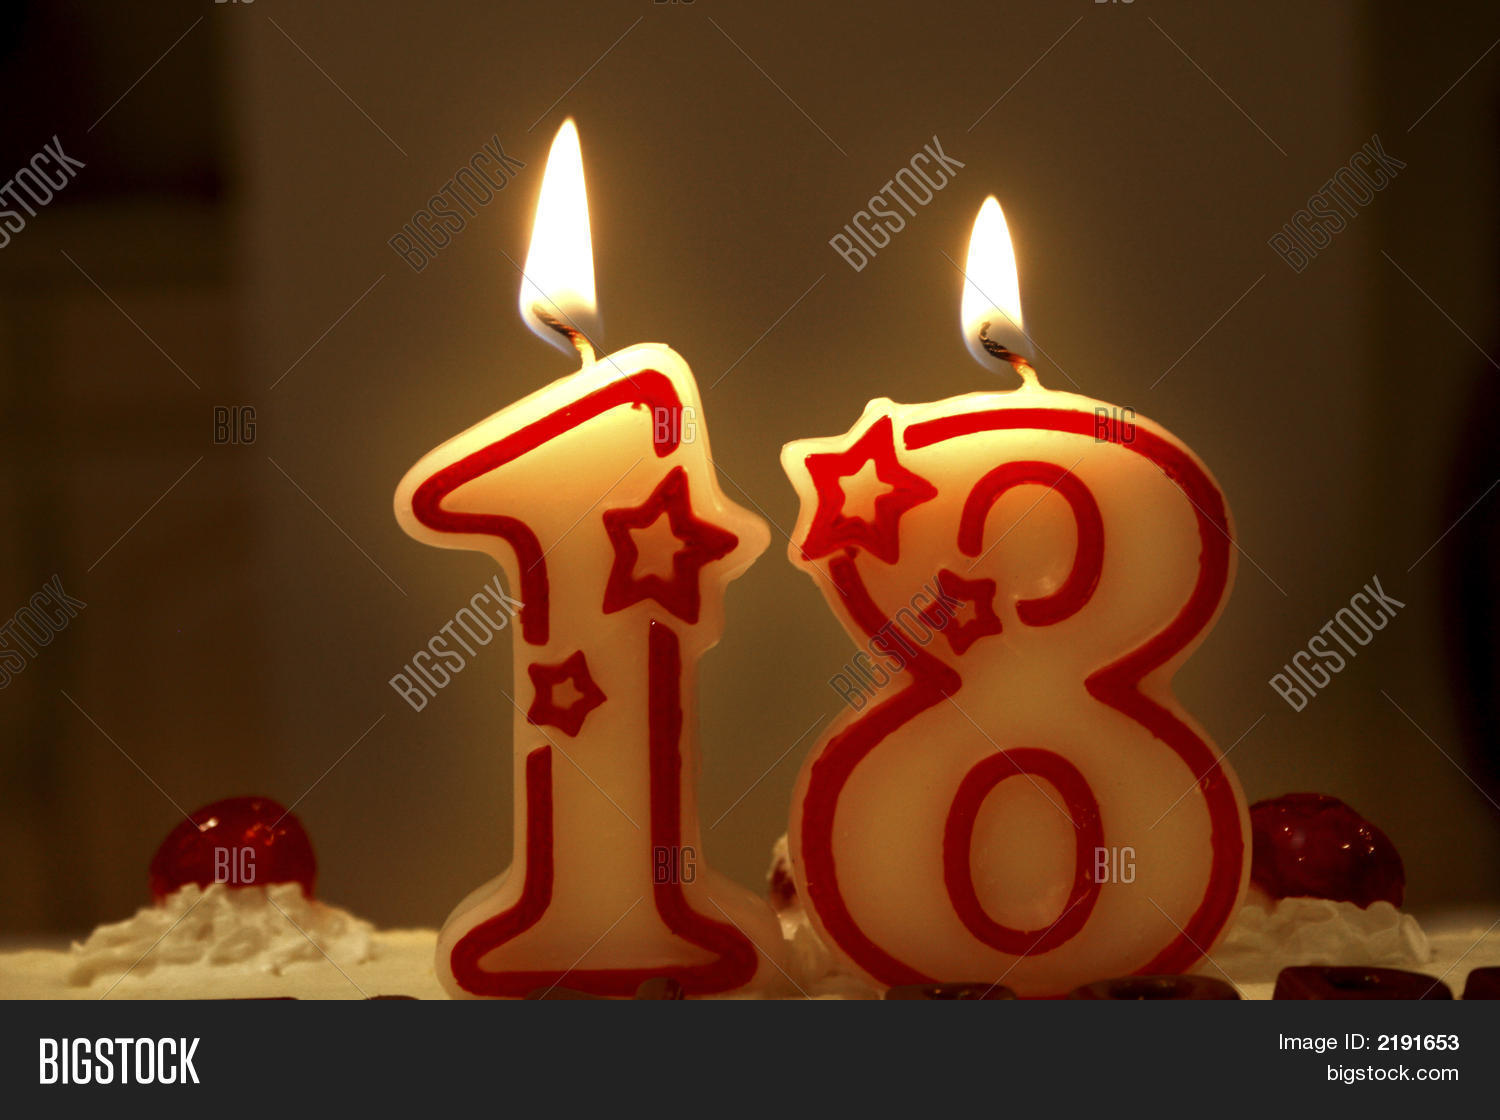 Birthday Candle Image Photo Free Trial